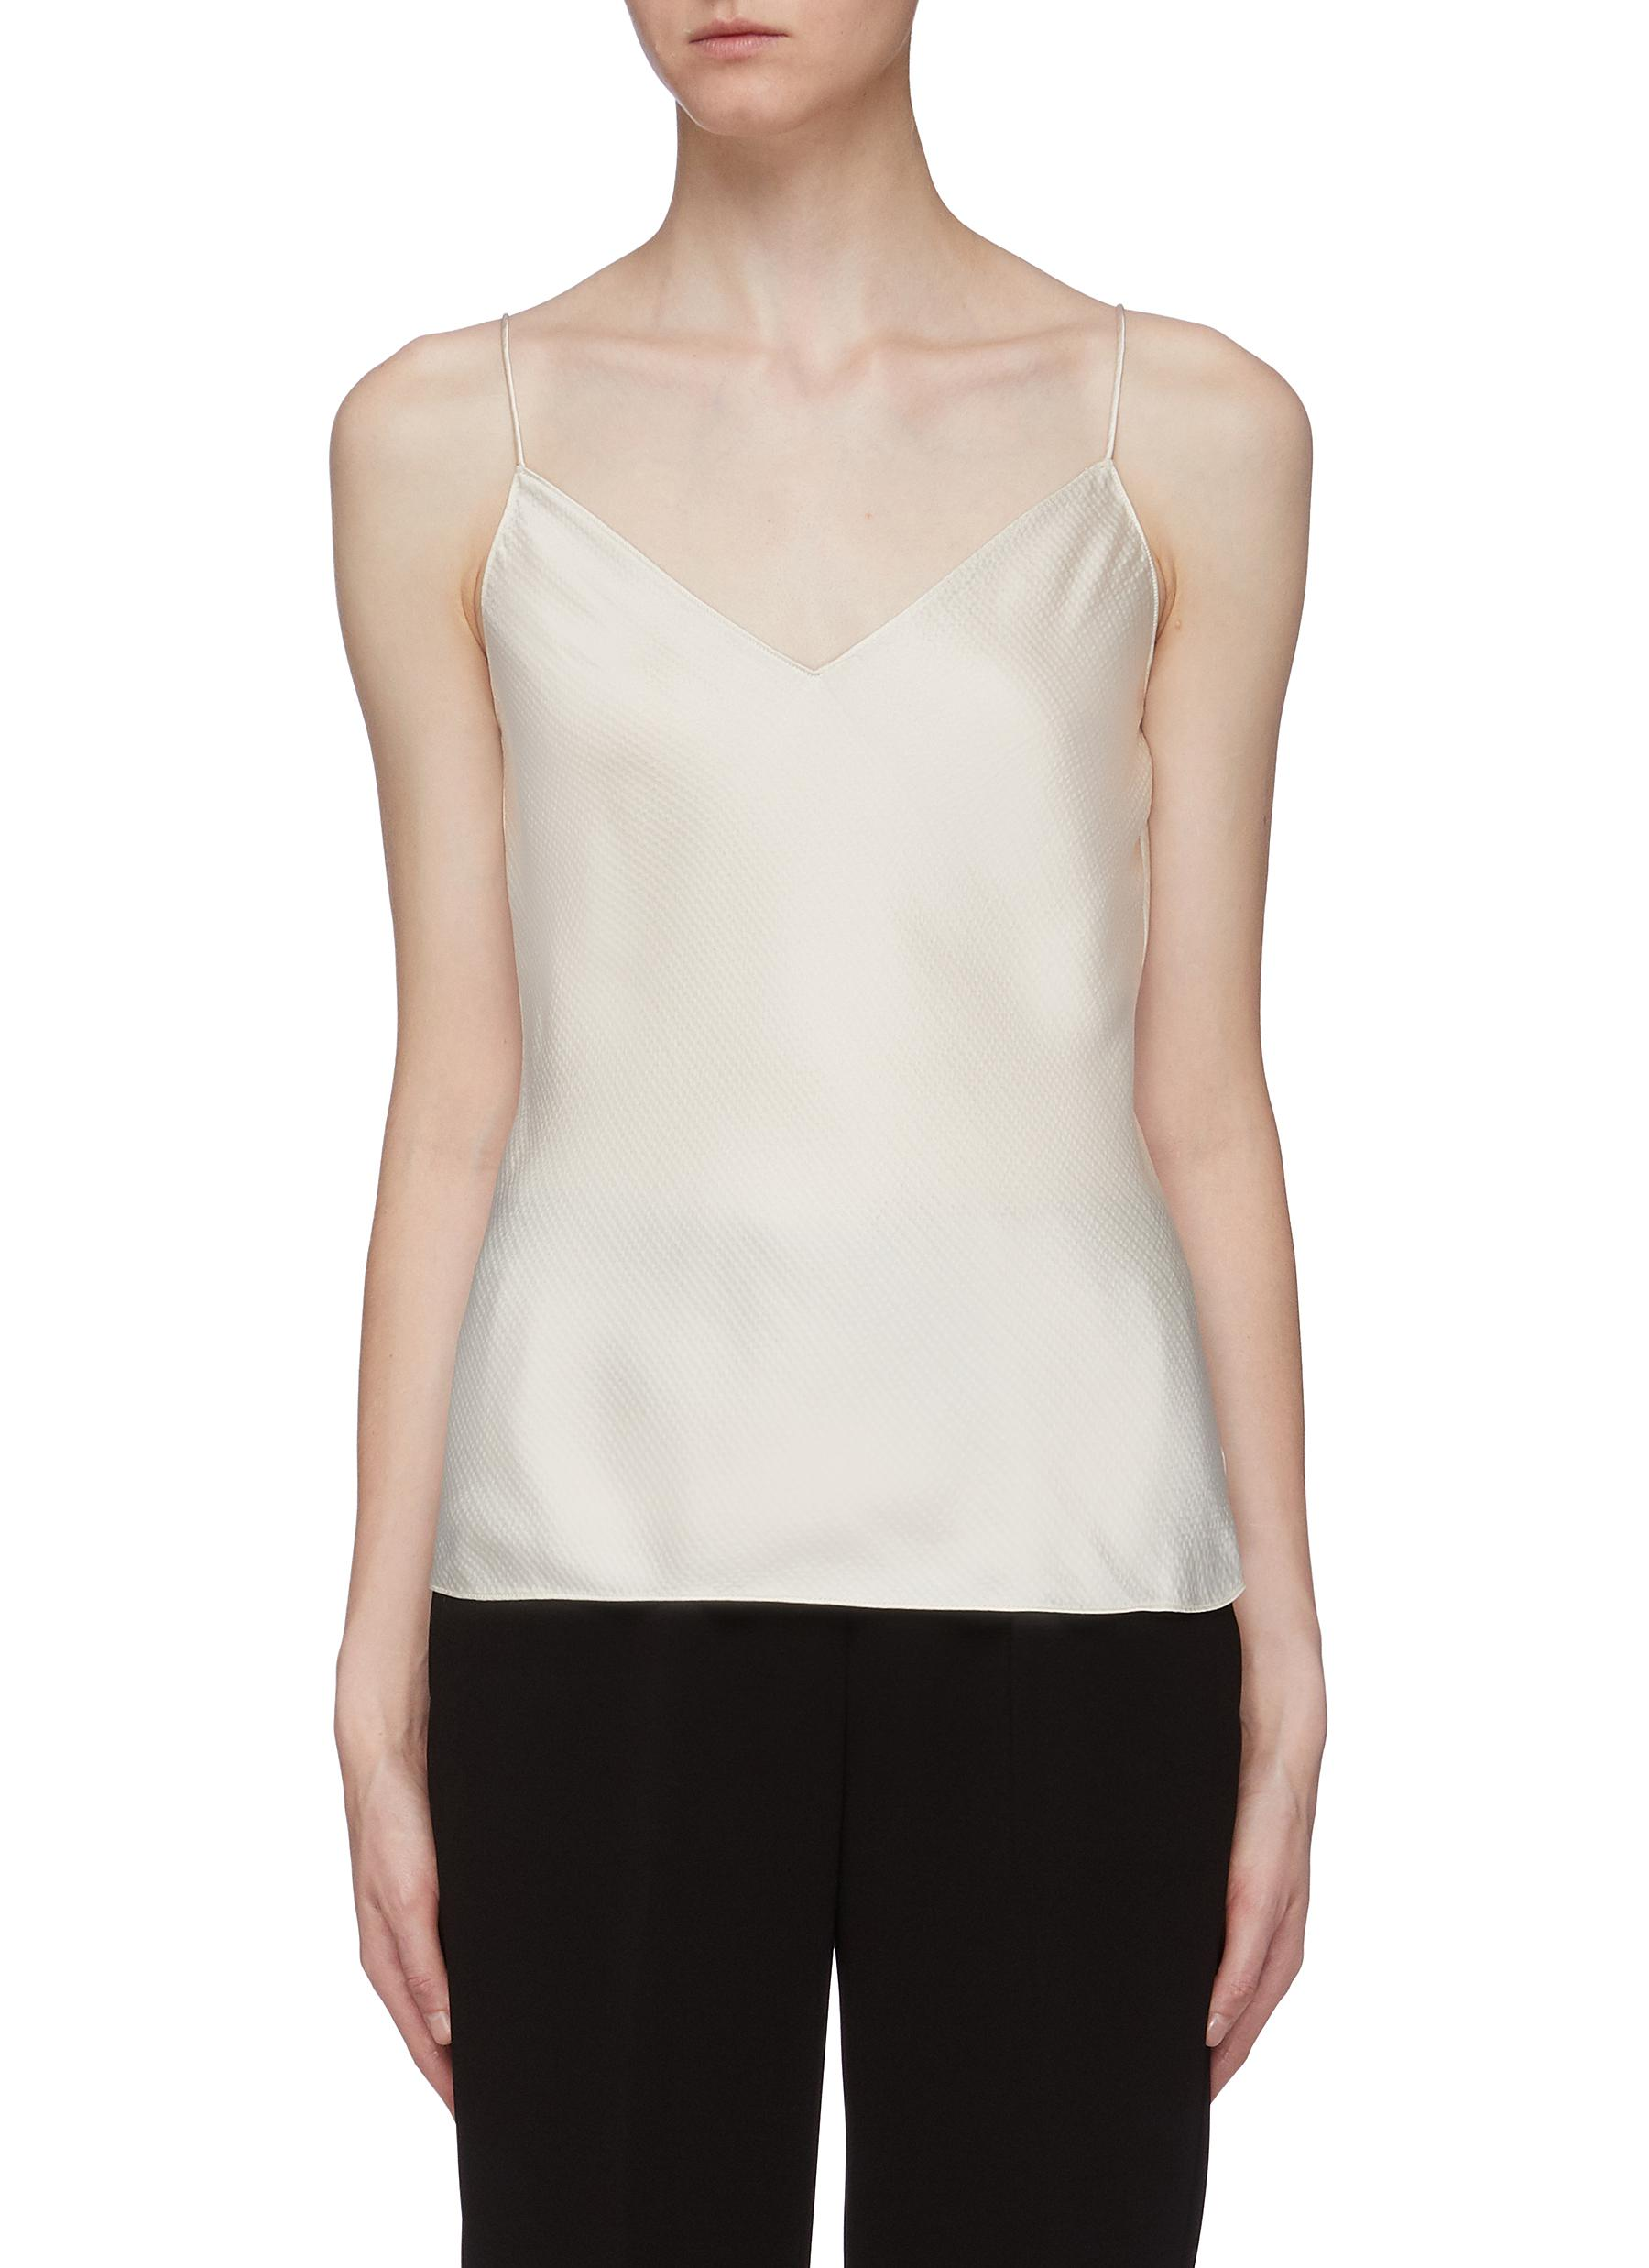 Easy hammered satin camisole top by Theory